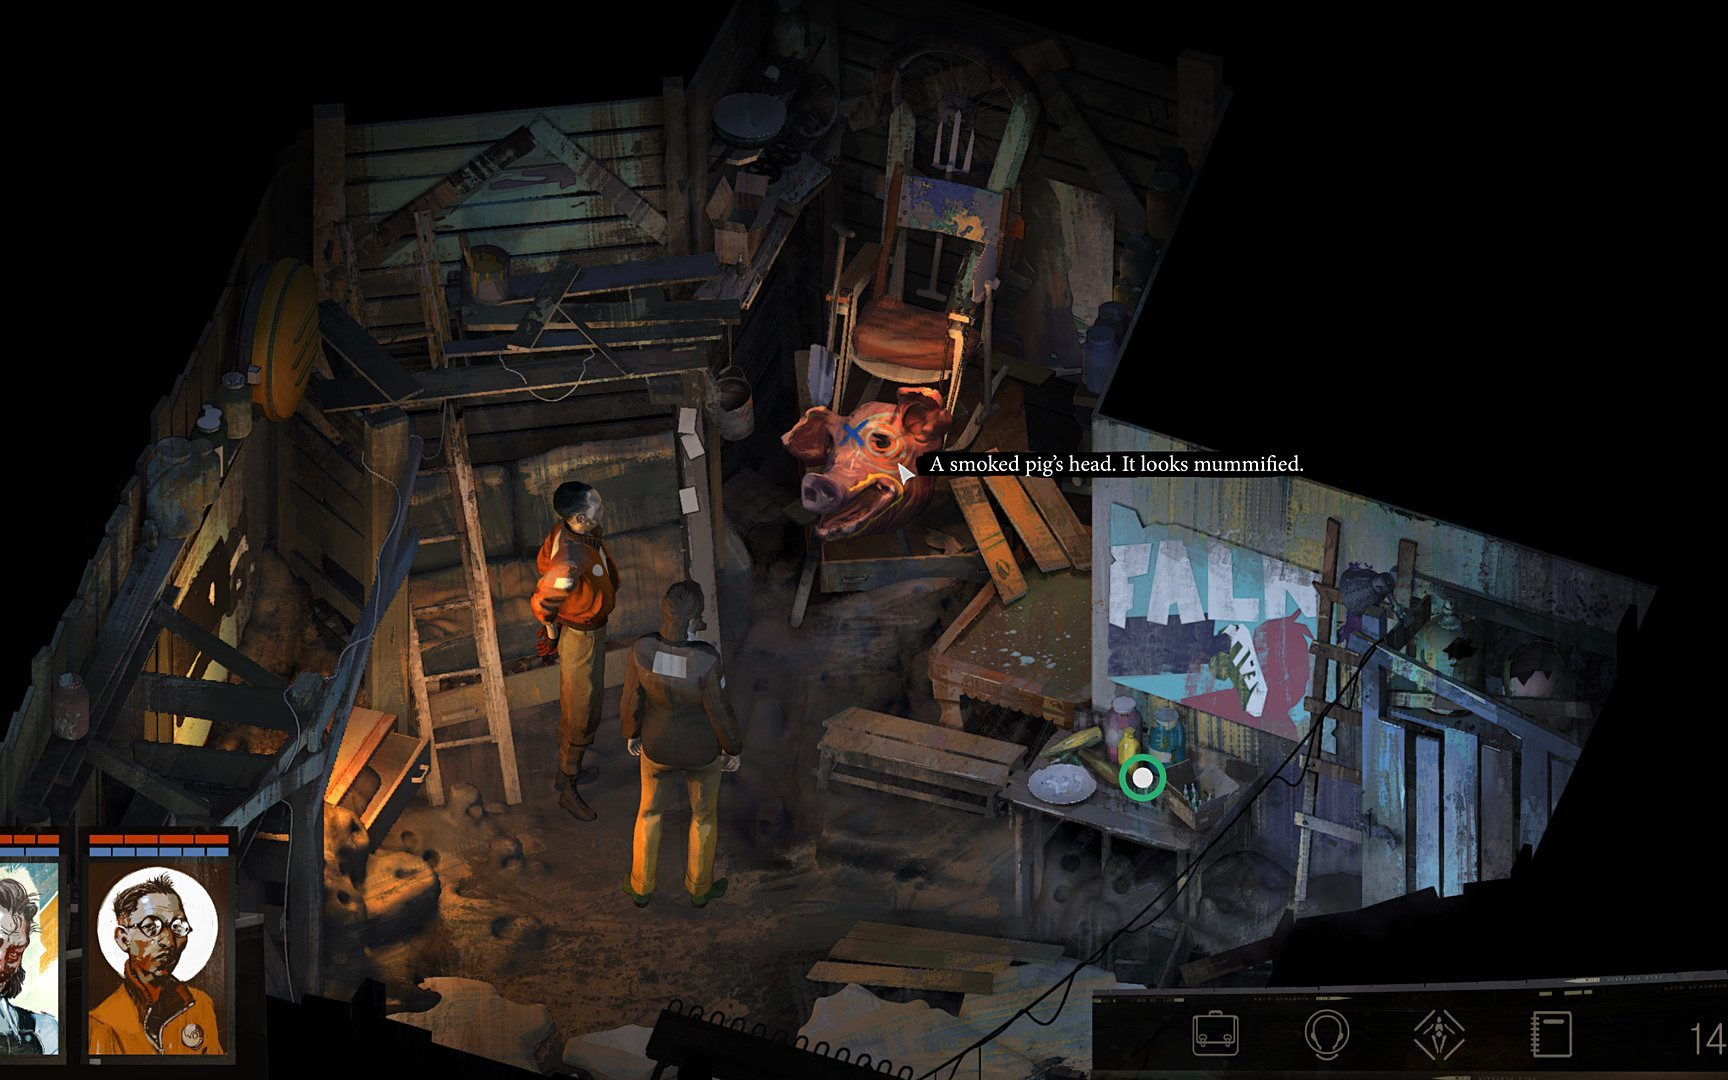 Disco Elysium The Best Upcoming Video Games For 2018 On